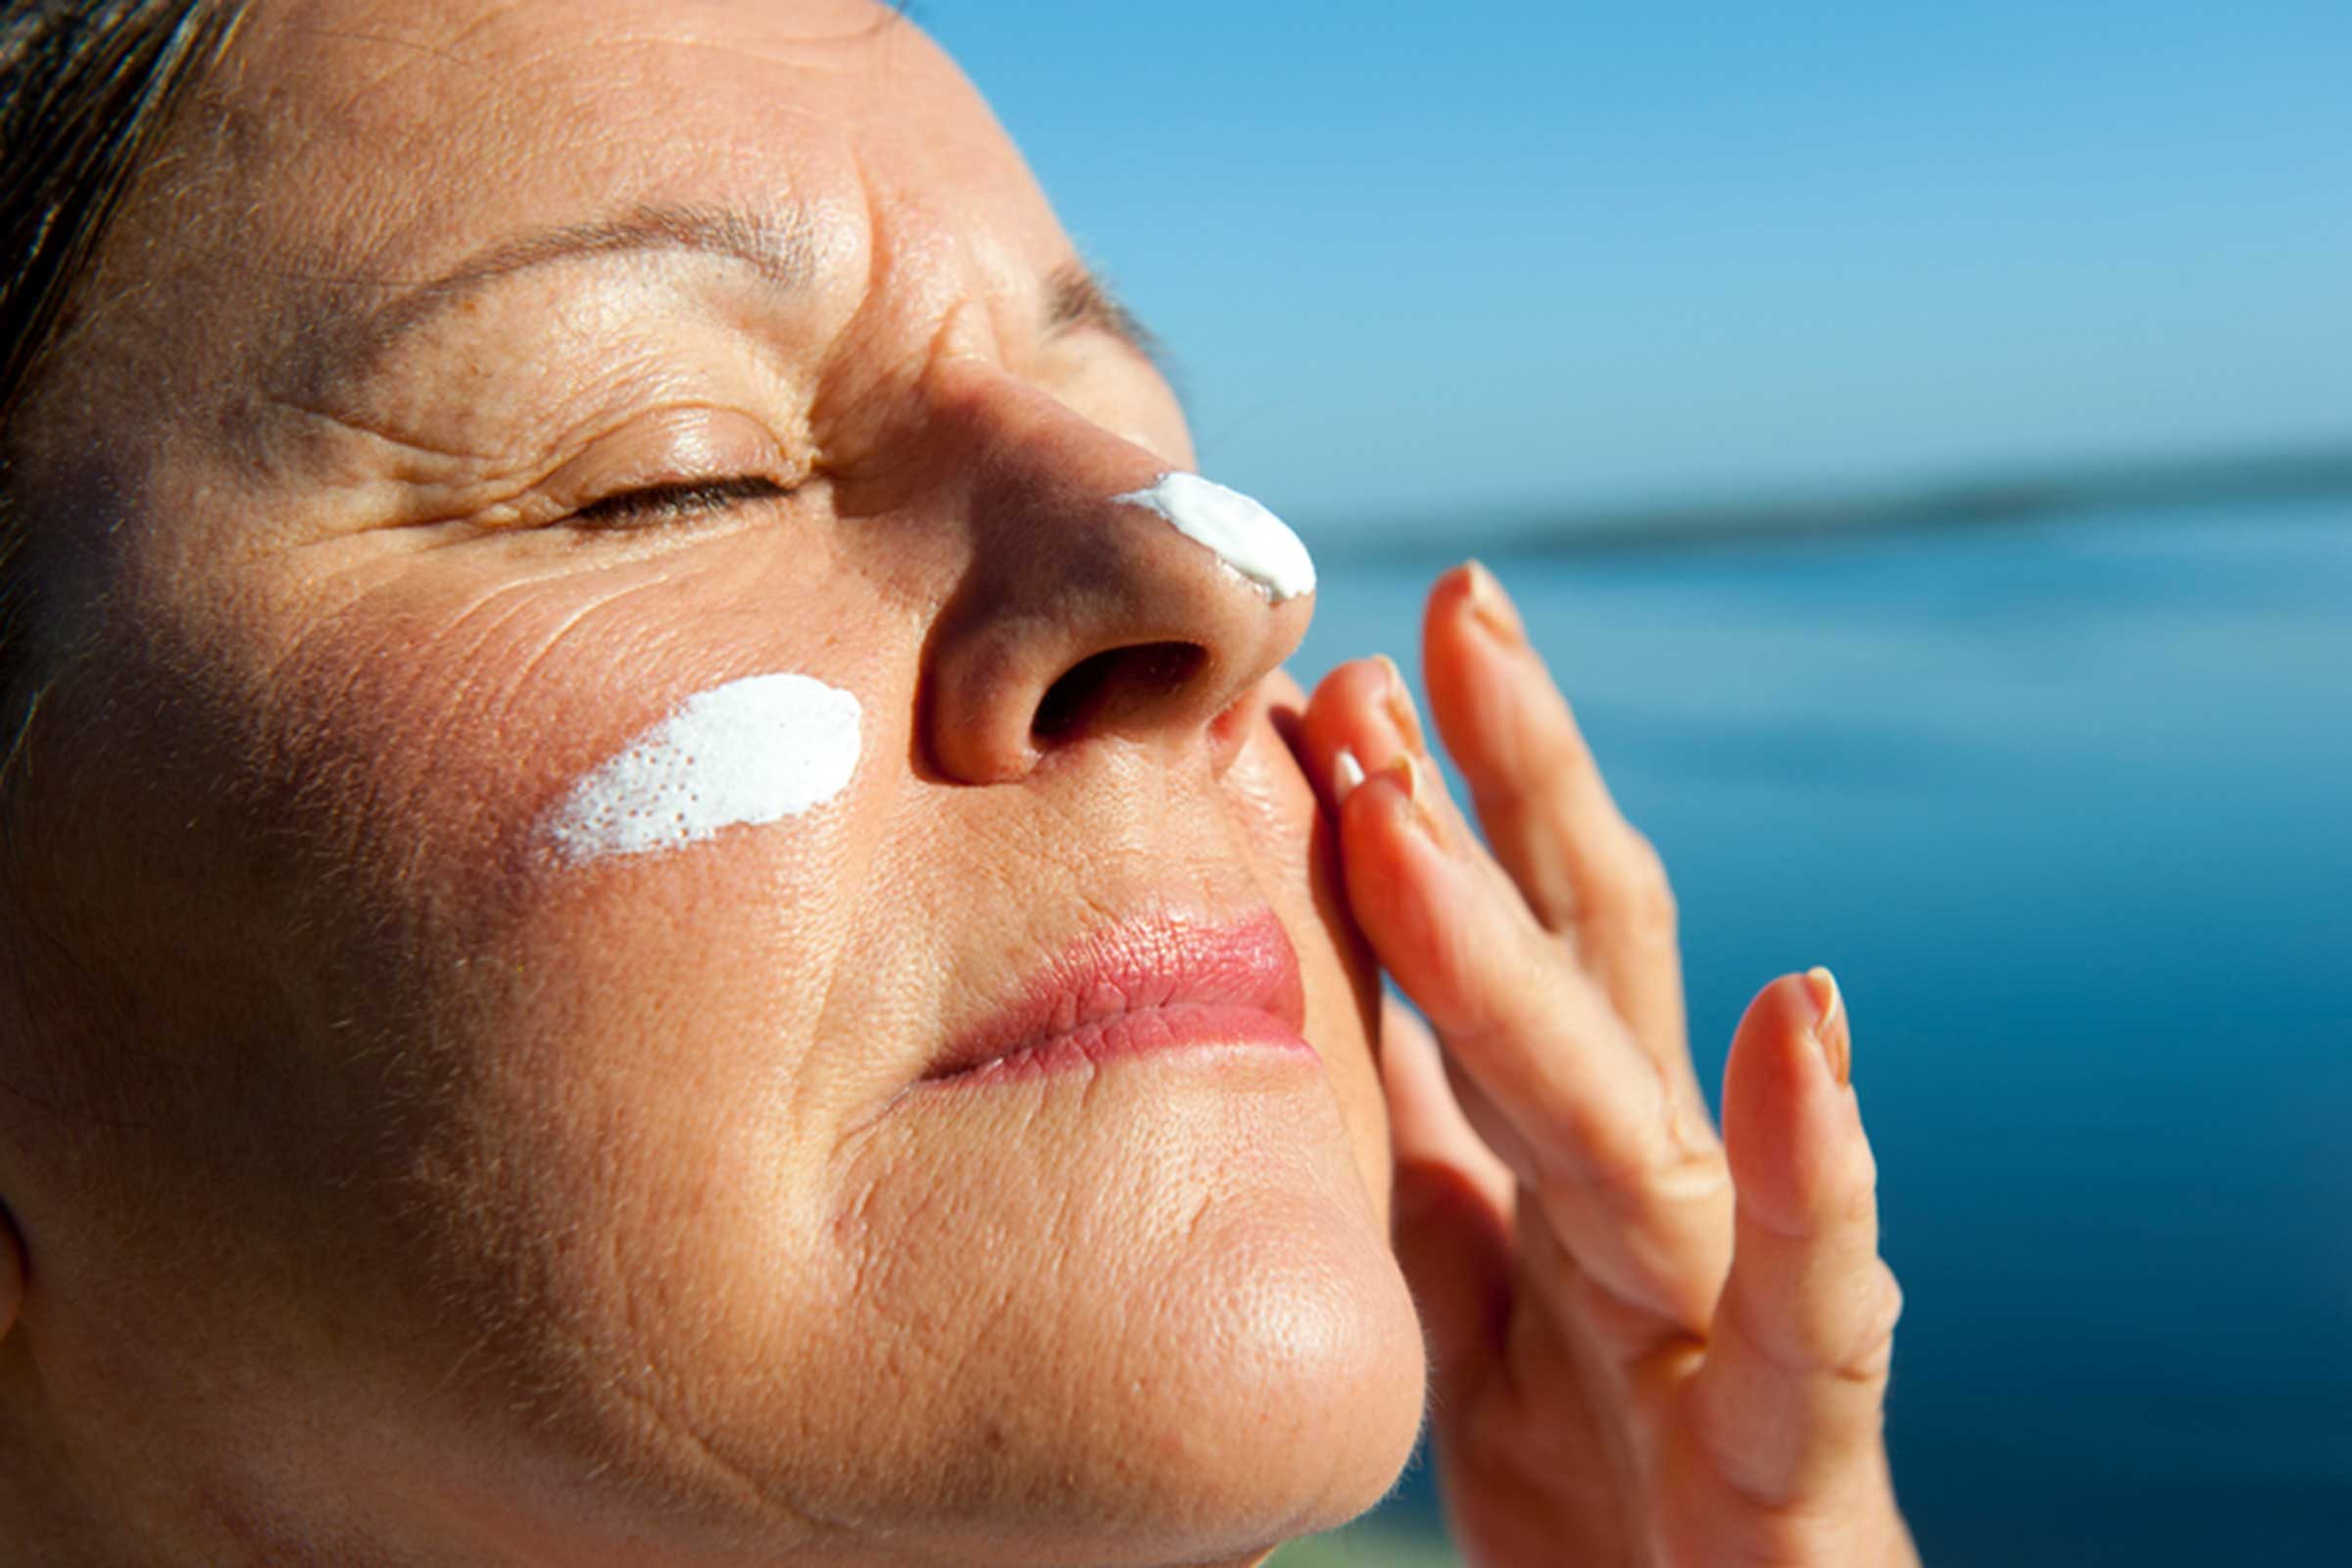 woman applying sunscreen on her face